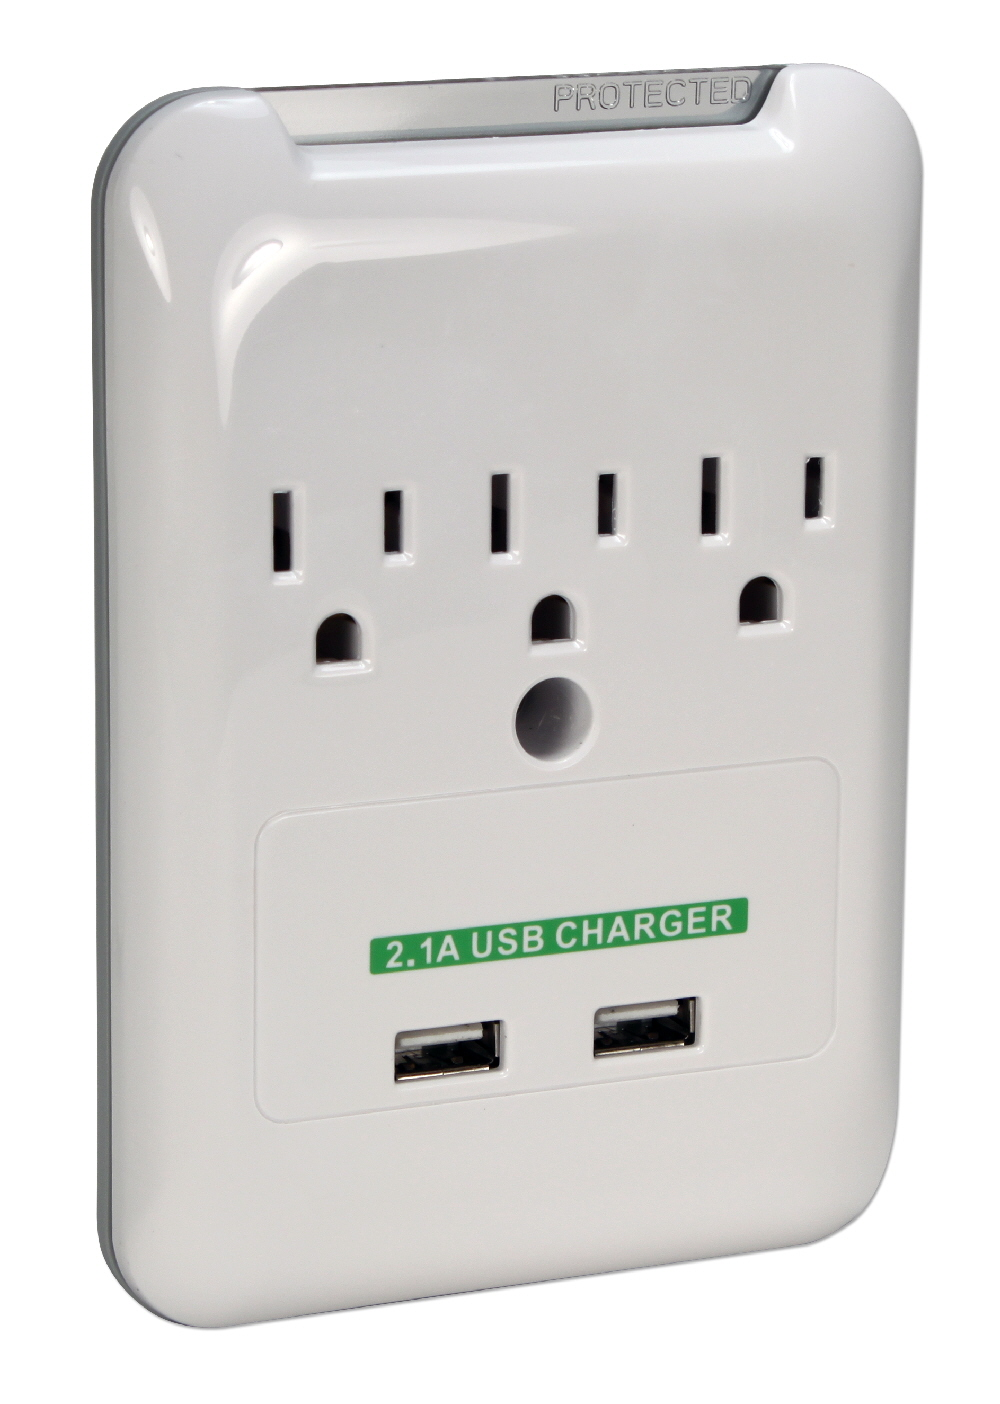 3-Outlet Wallmount Surge Protector with Dual-USB 2.1Amp Charging Ports PP-68PL-AC3200-CMT